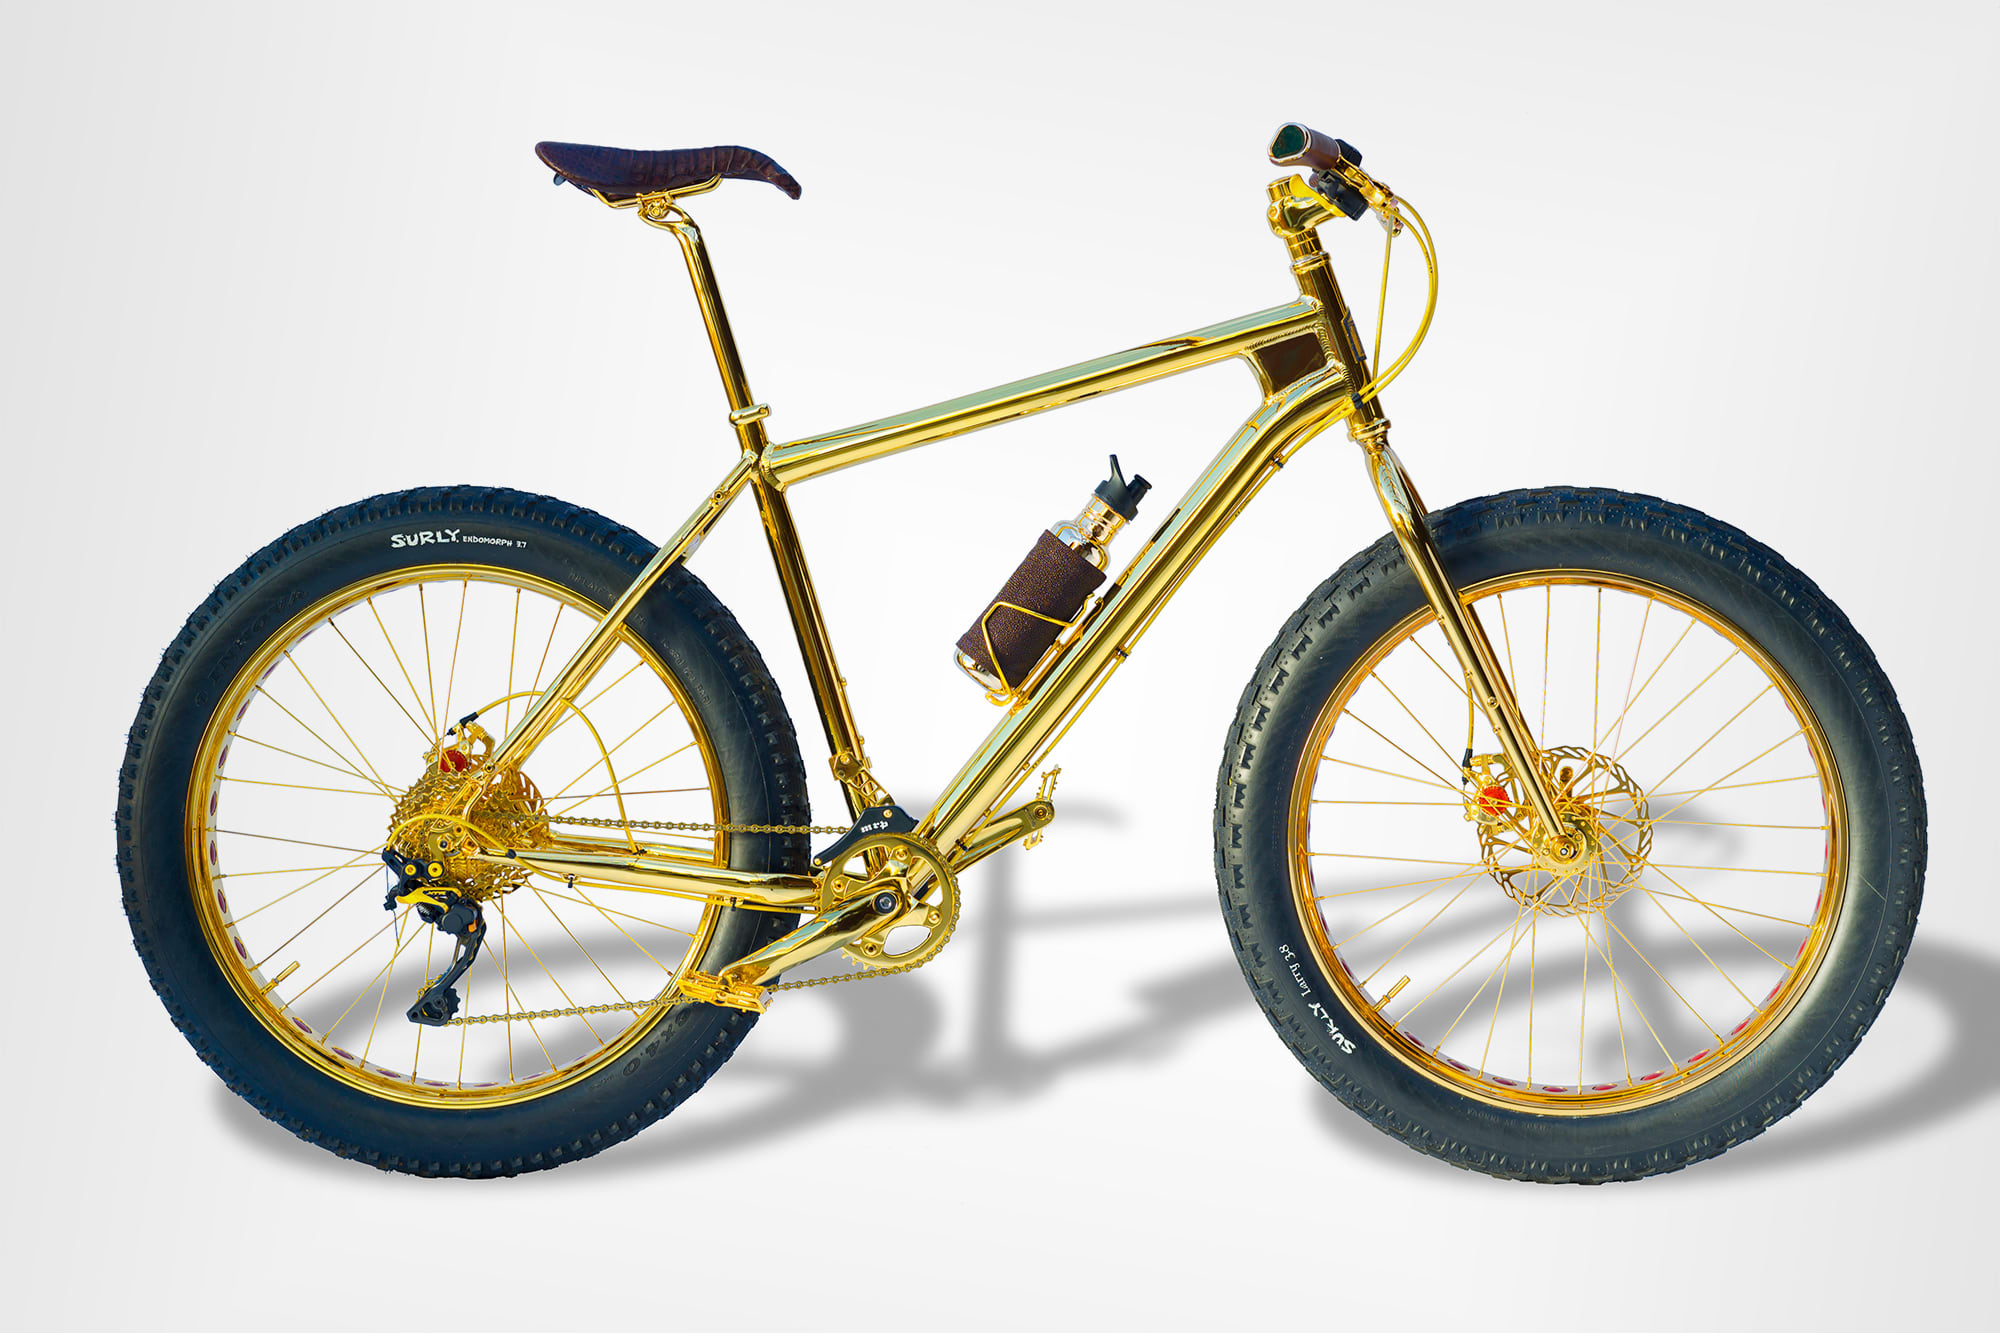 The 500 000 Gold Mountain Bike